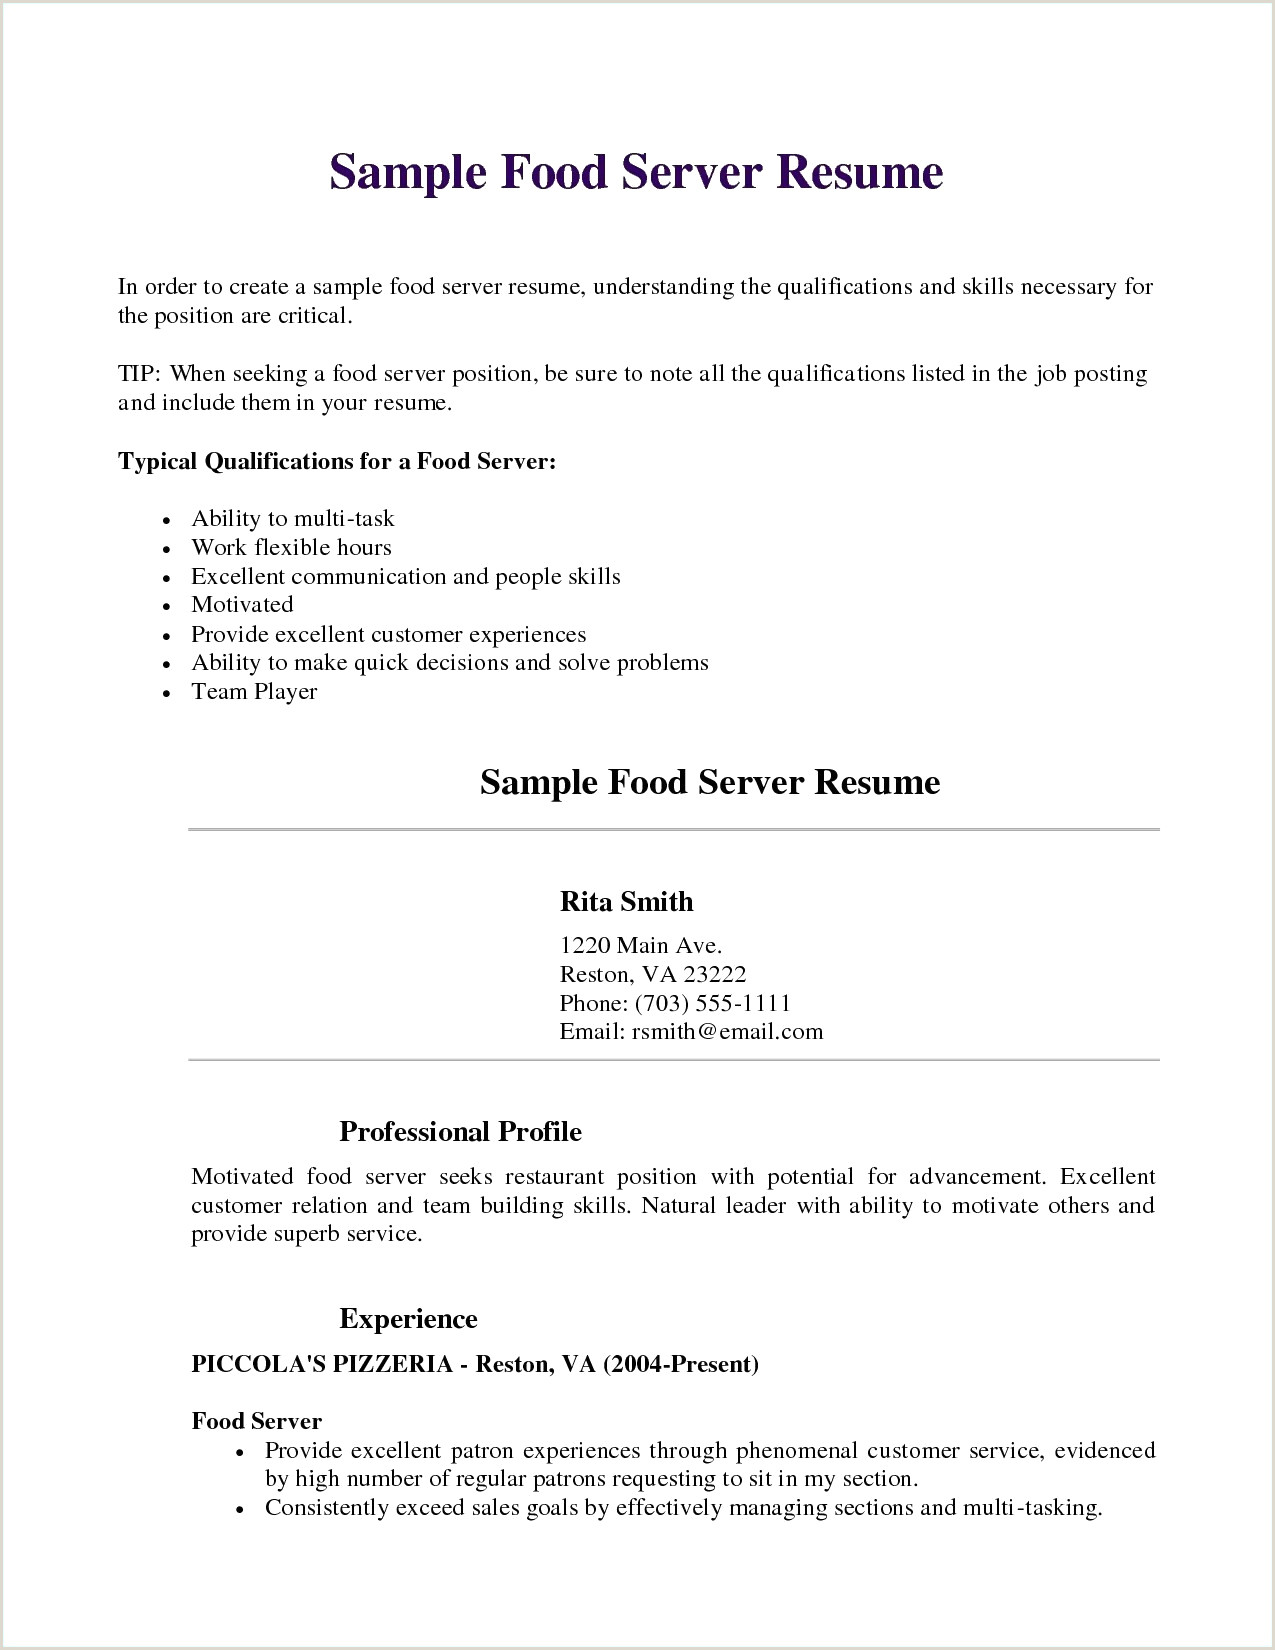 Resume for Customer Service Jobs Awesome Custodian Job